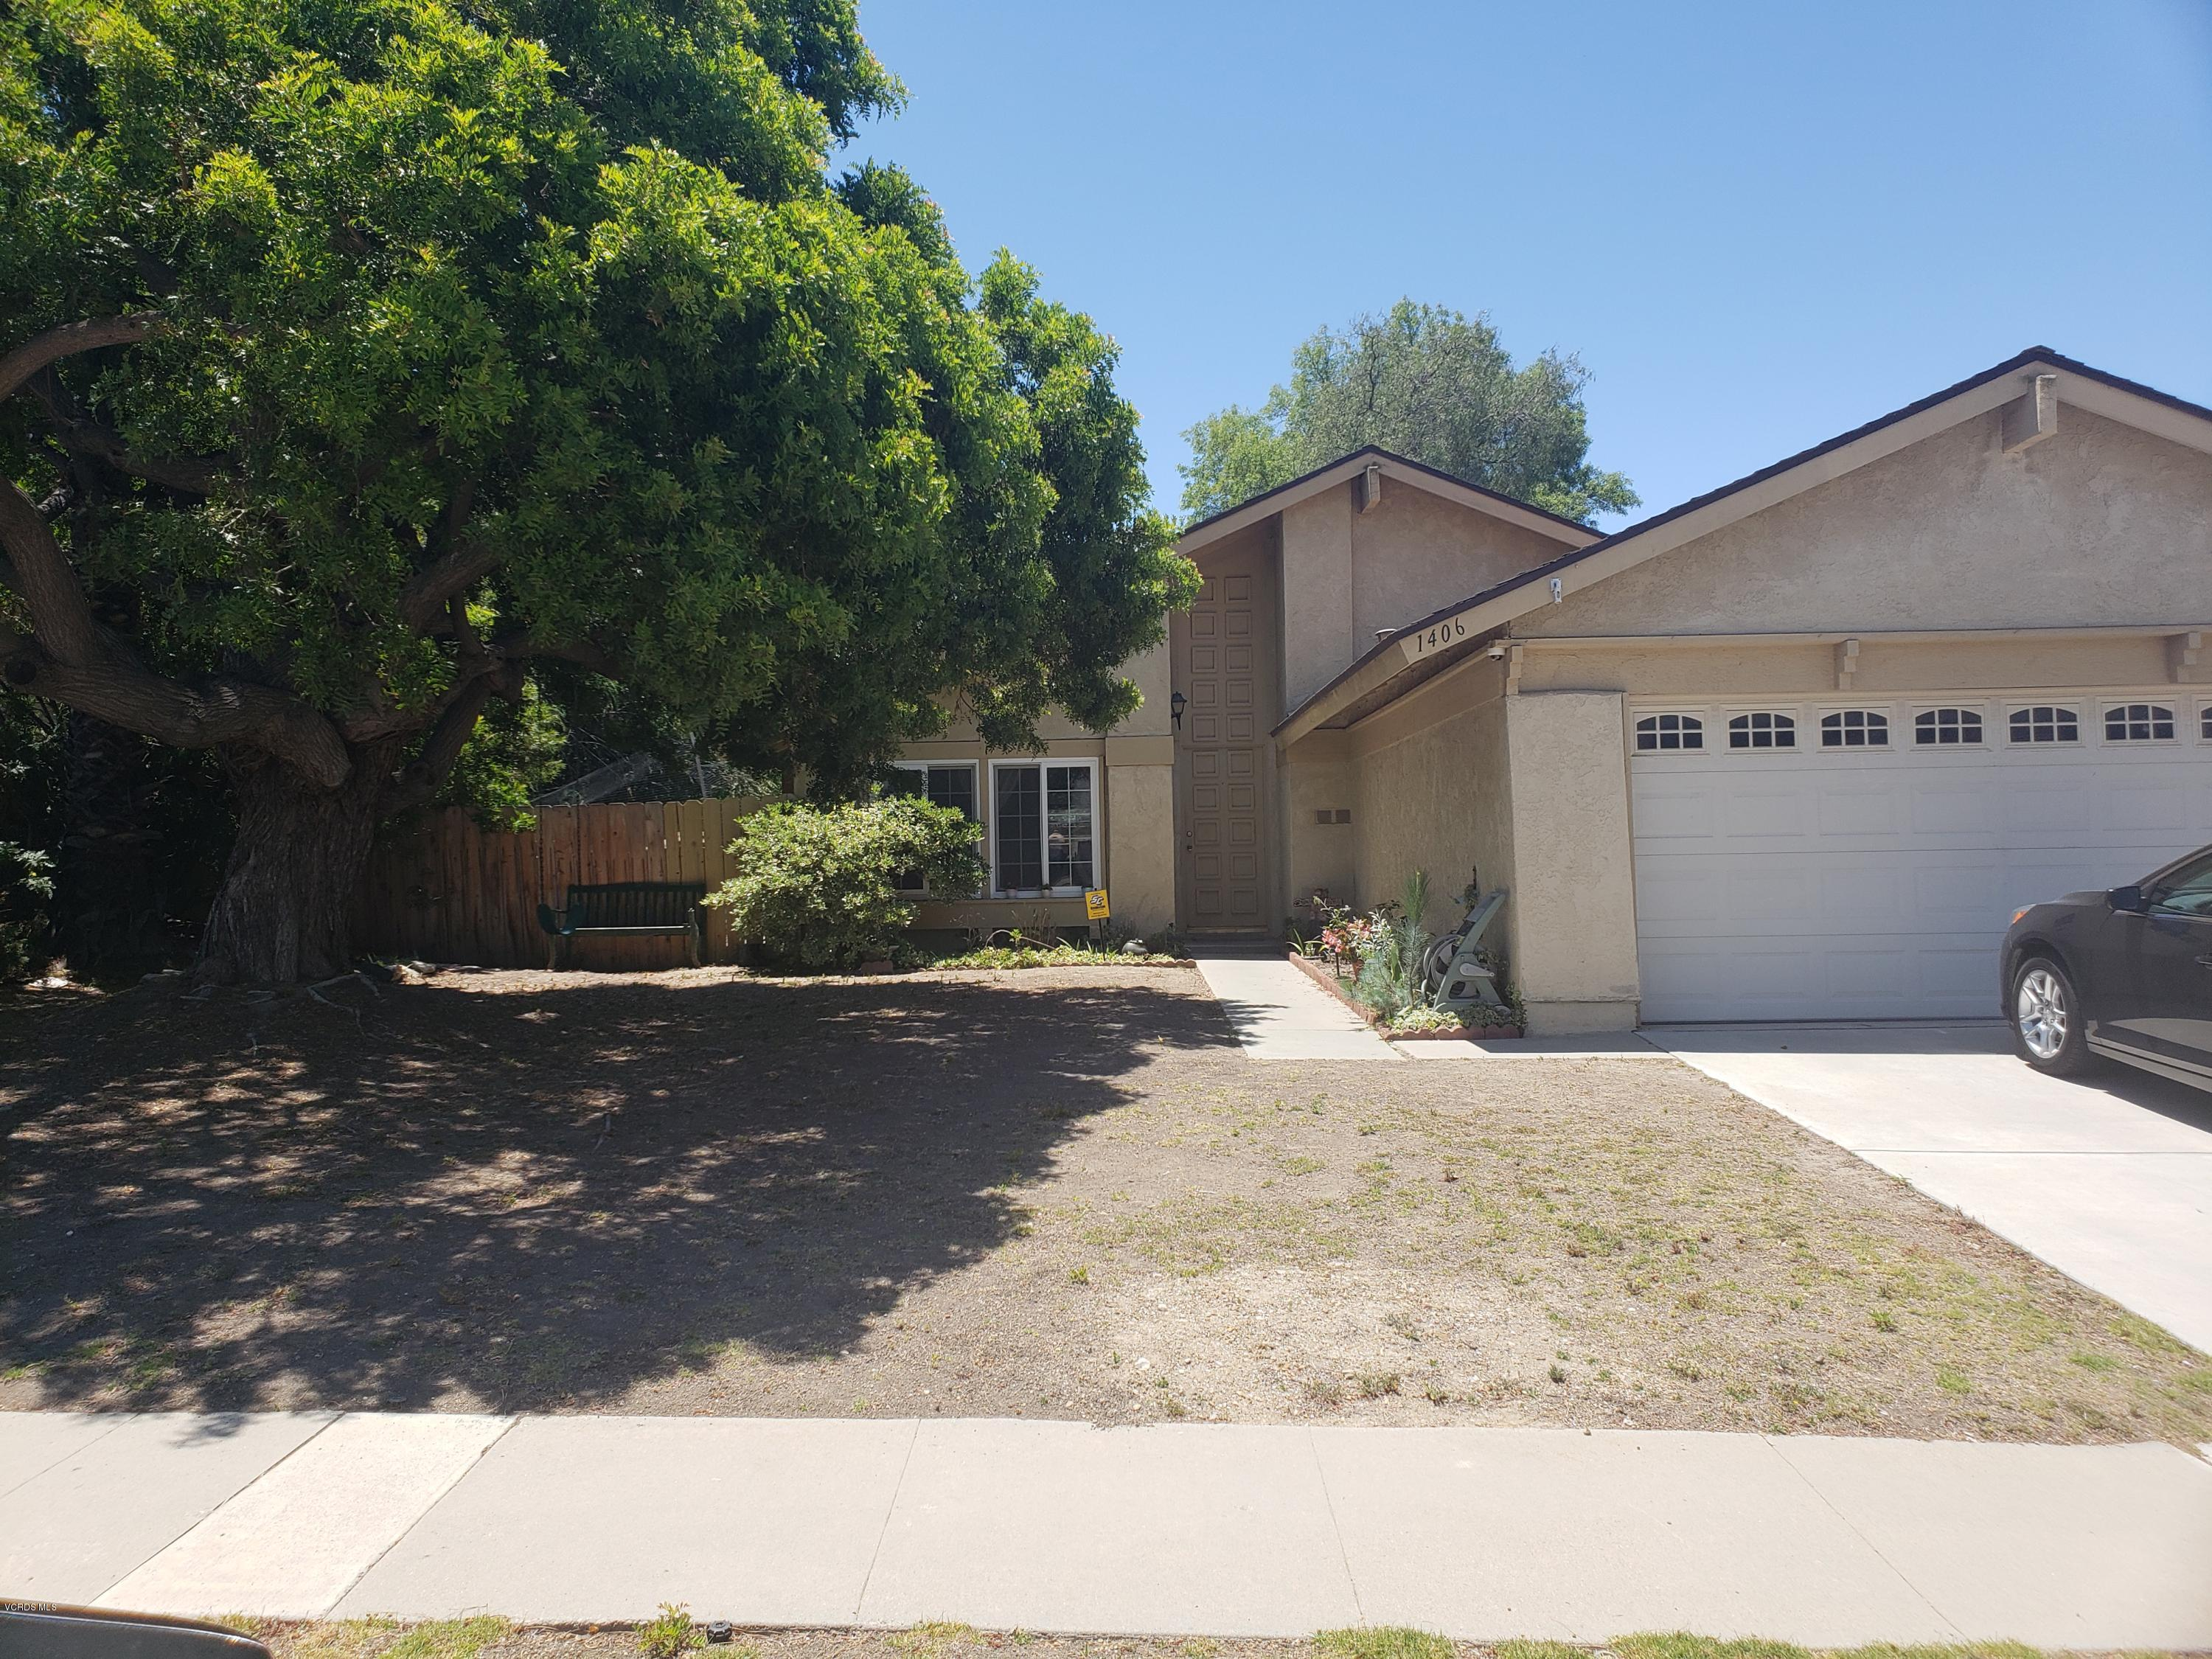 1406 Calle De Oro, Thousand Oaks, CA 91360